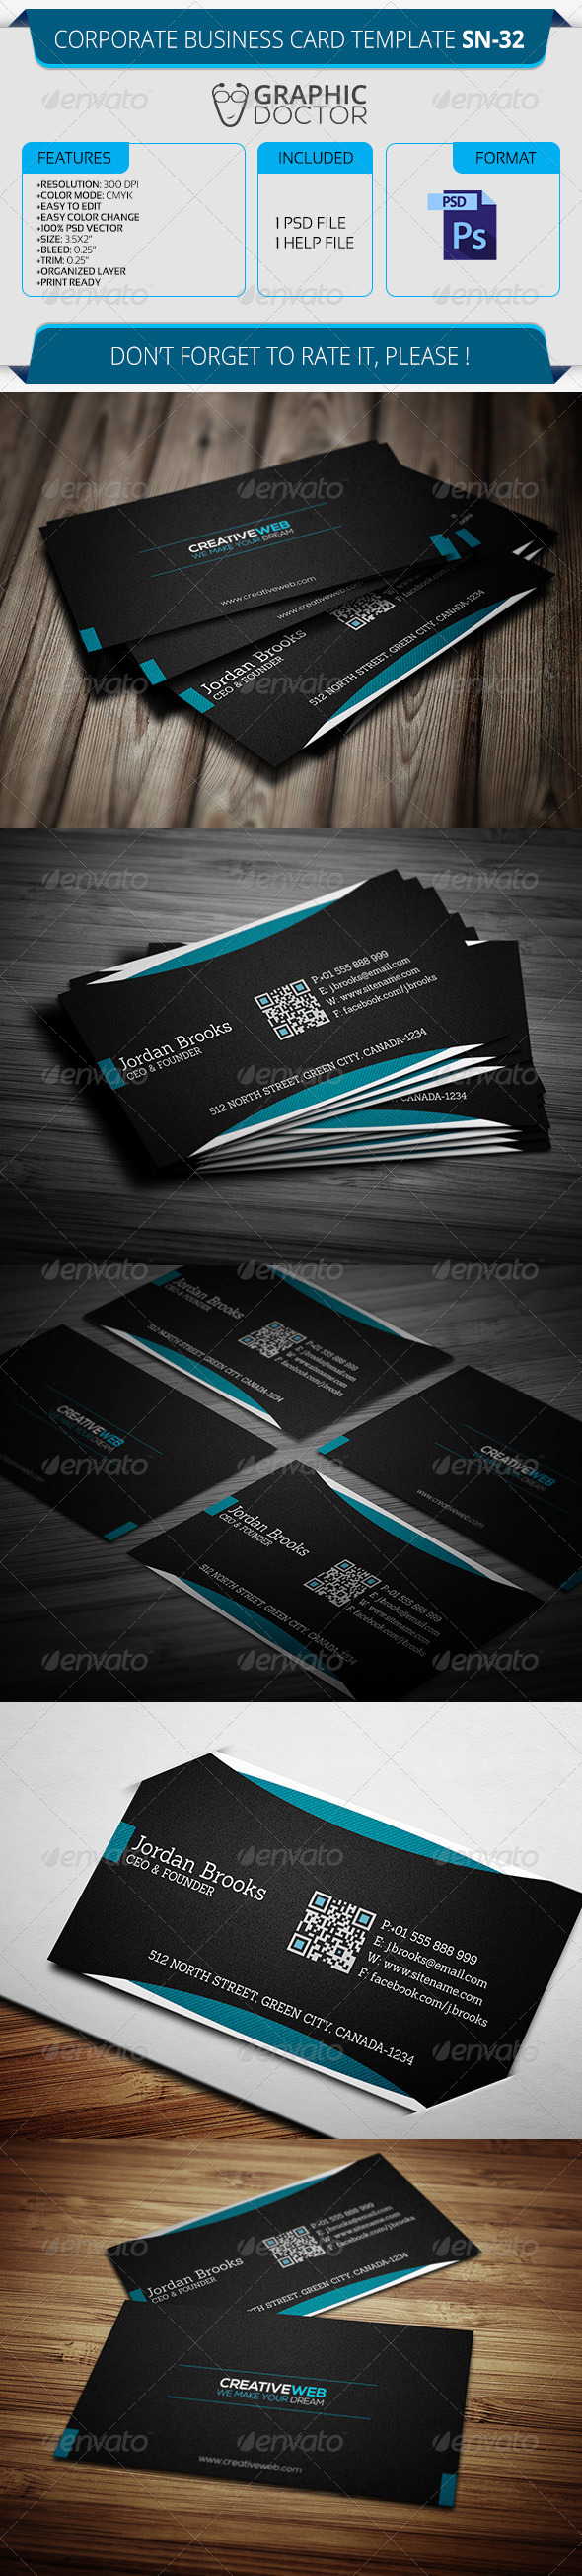 Corporate Business Card Template SN-32 - Corporate Business Cards